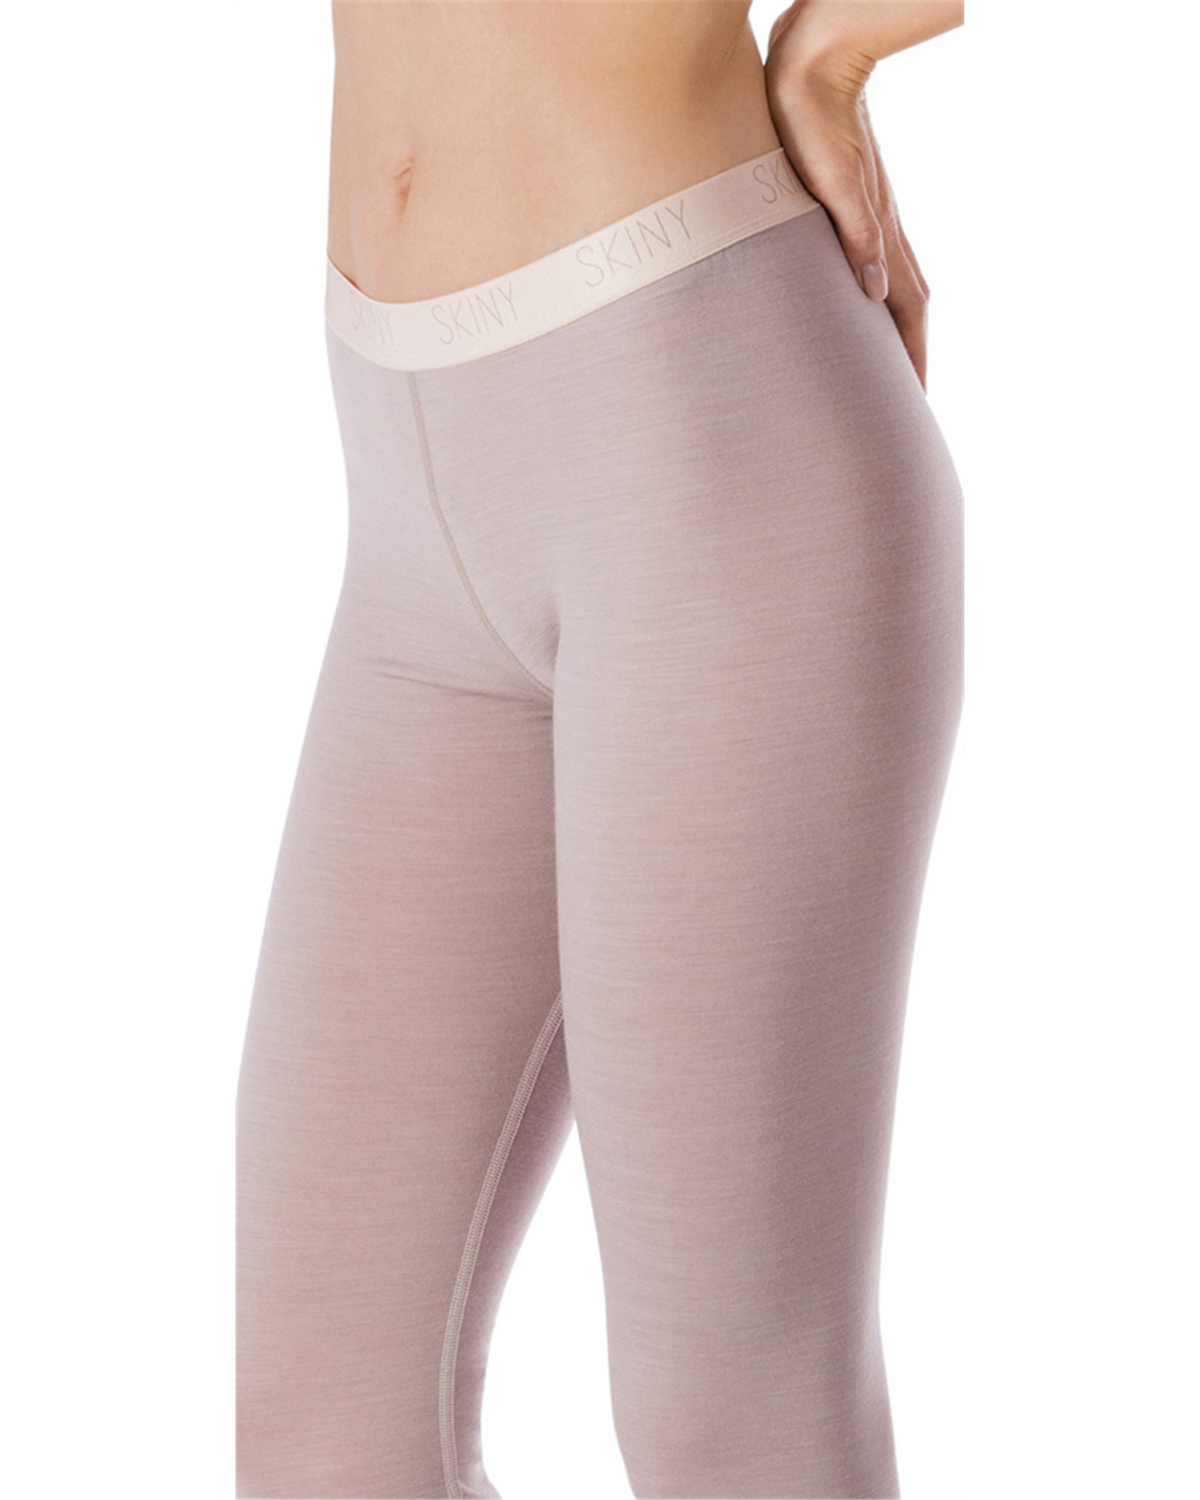 Skiny_ActiveWool_082874_4683 d